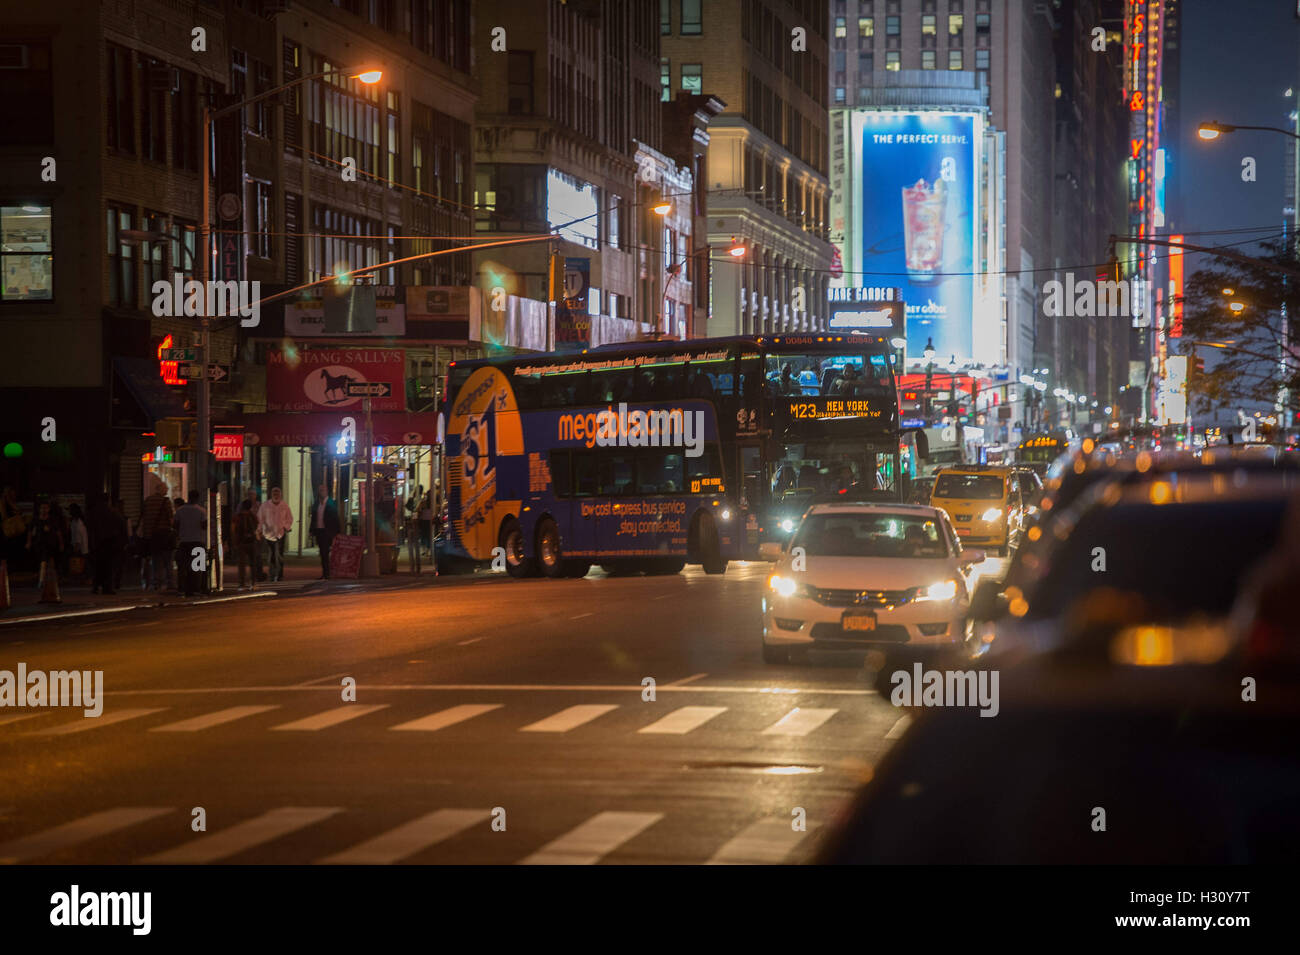 New York, NY, USA. 13th Sep, 2016. A Megabus turns onto Seventh Avenue as BoltBus and Megabus wish to move closer - Stock Image